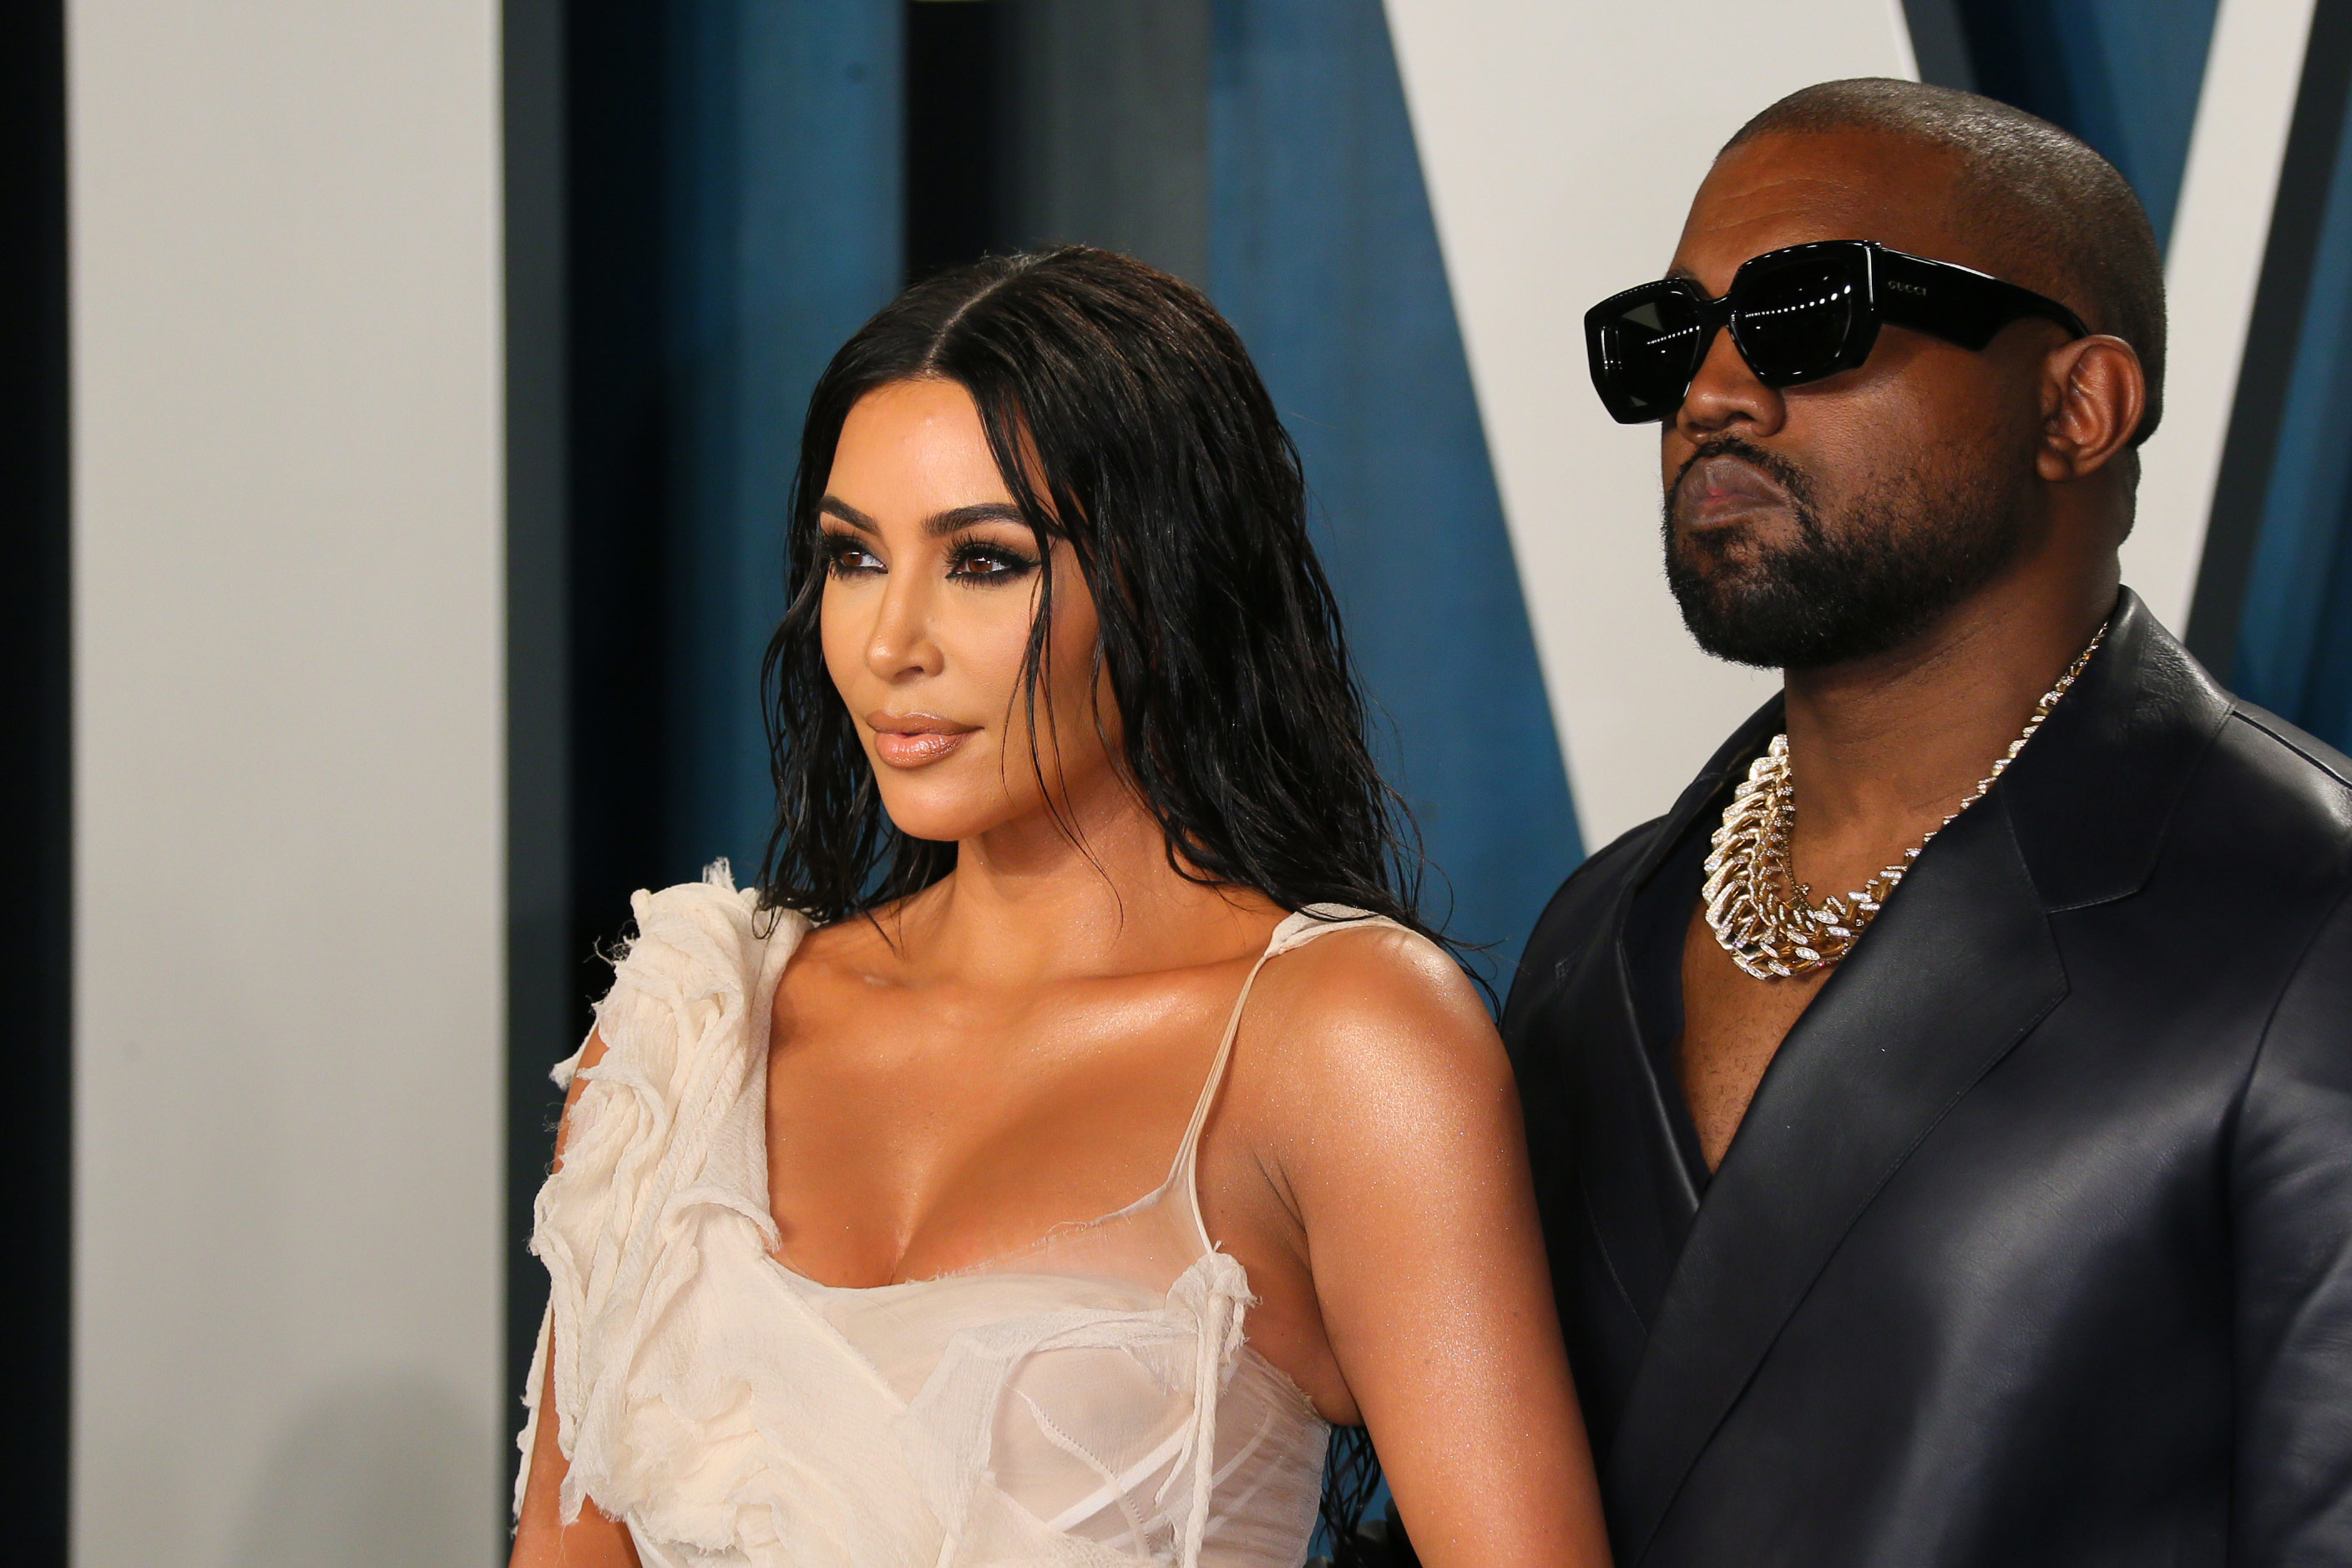 Kanye West asks for joint custody in divorce filing